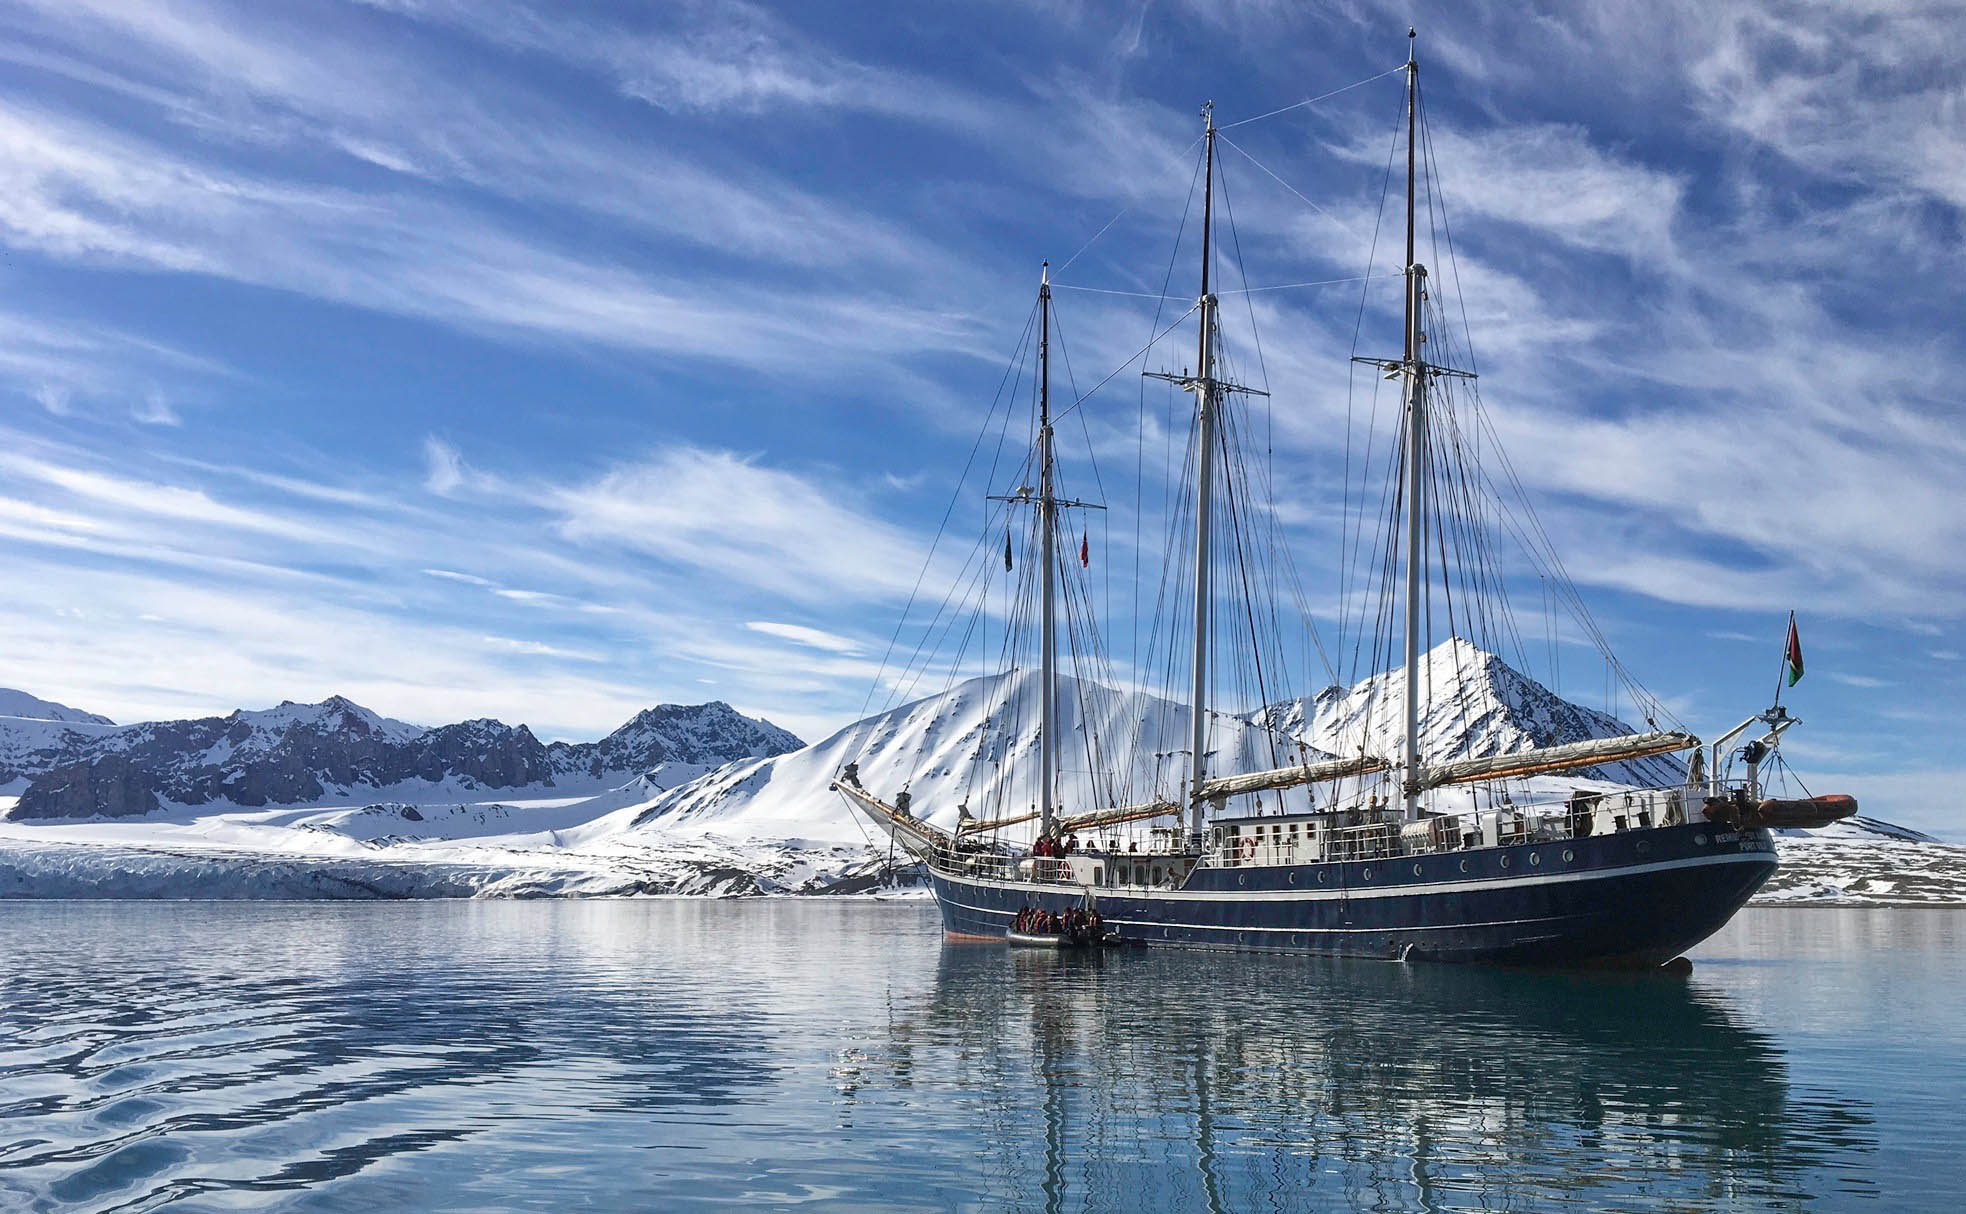 Sailing in Spitsbergen on Rembrandt - Christine Nicol